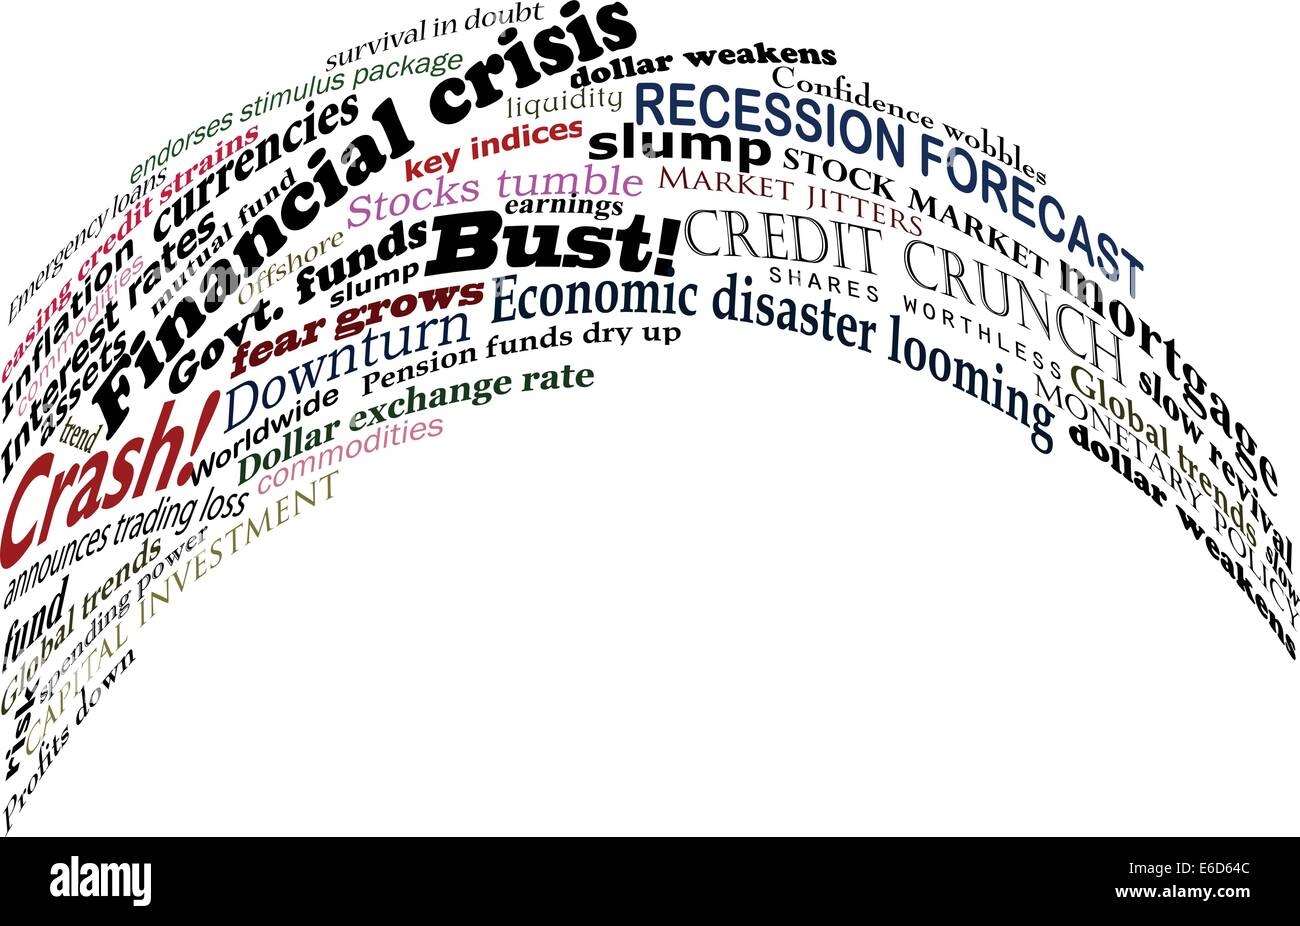 Vector design of headlines about economic problems - Stock Image